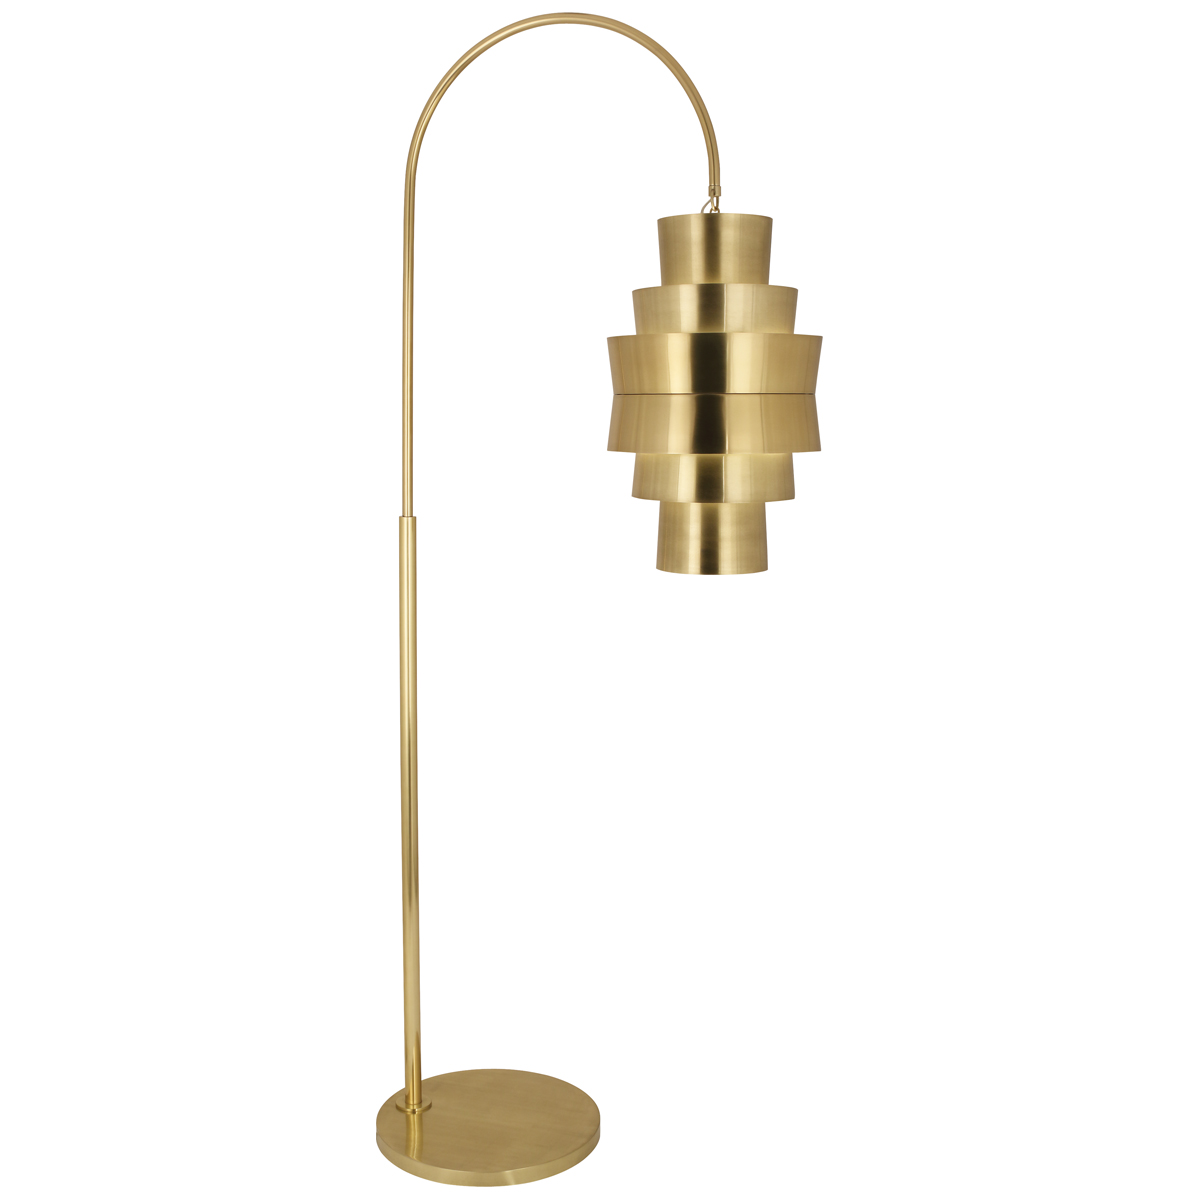 Pierce Floor Lamp Style #981